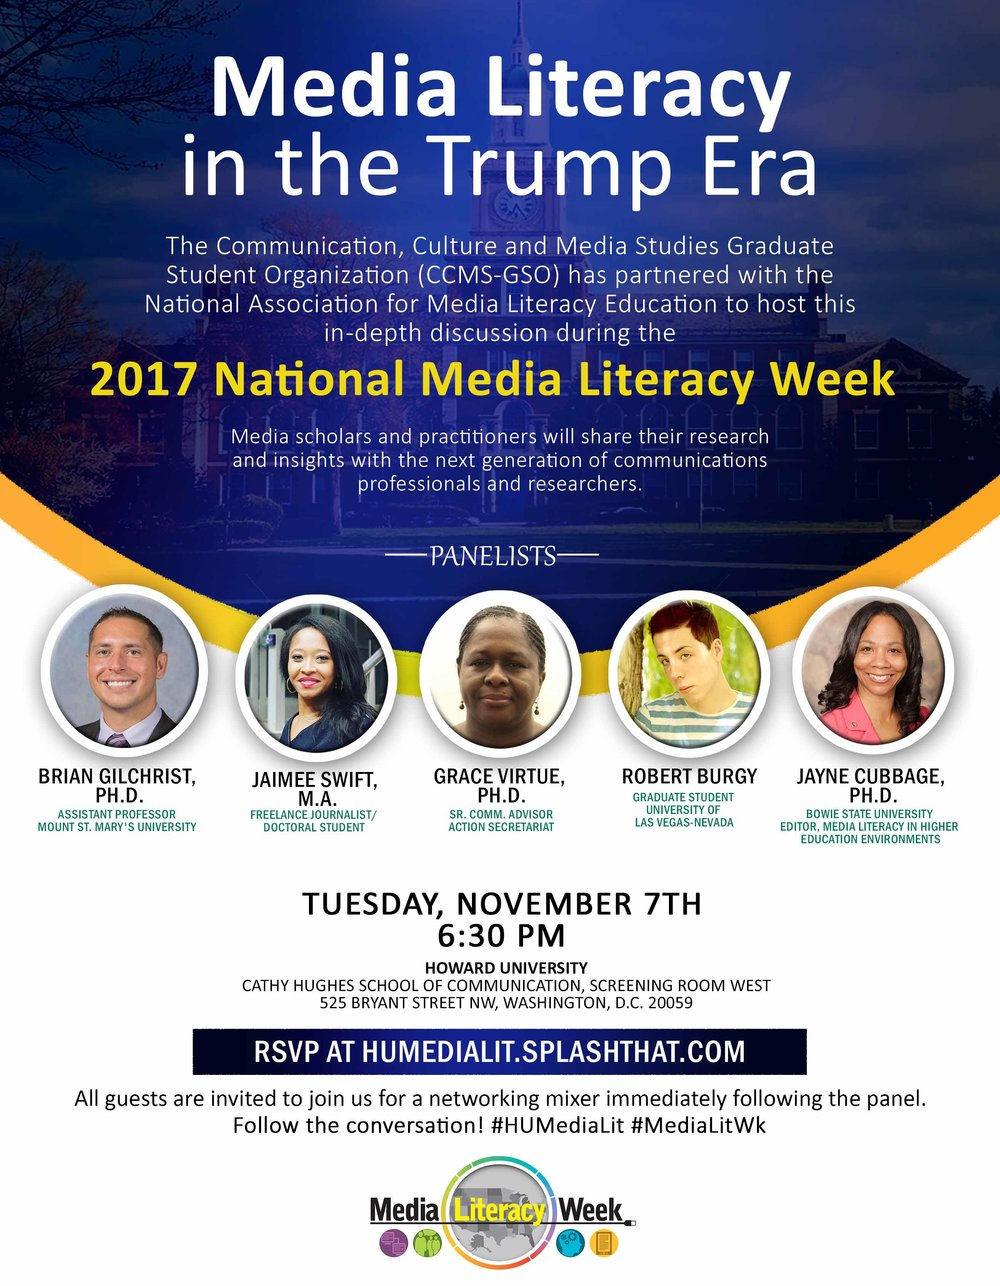 Event Organizer: Media Literacy in the Trump Era